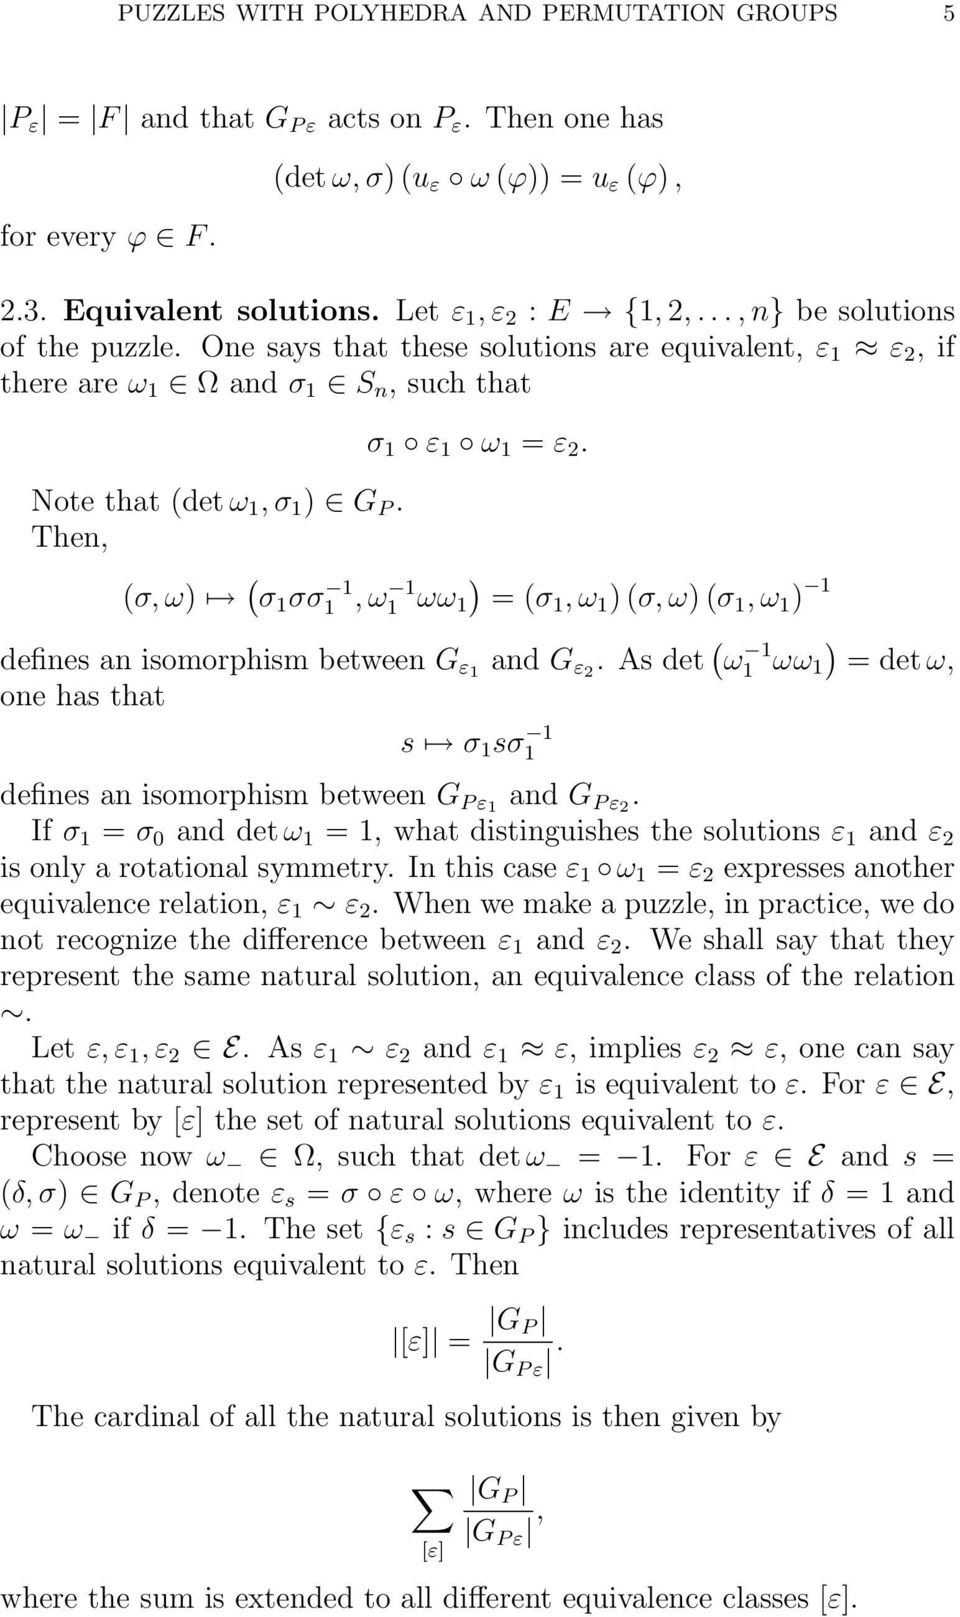 (σ, ω) ( σ σσ, ω ωω ) = (σ, ω ) (σ, ω) (σ, ω ) defines an isomorphism between G ε one has that s σ sσ and G ε. As det ( ω ωω ) = det ω, defines an isomorphism between G P ε and G P ε.